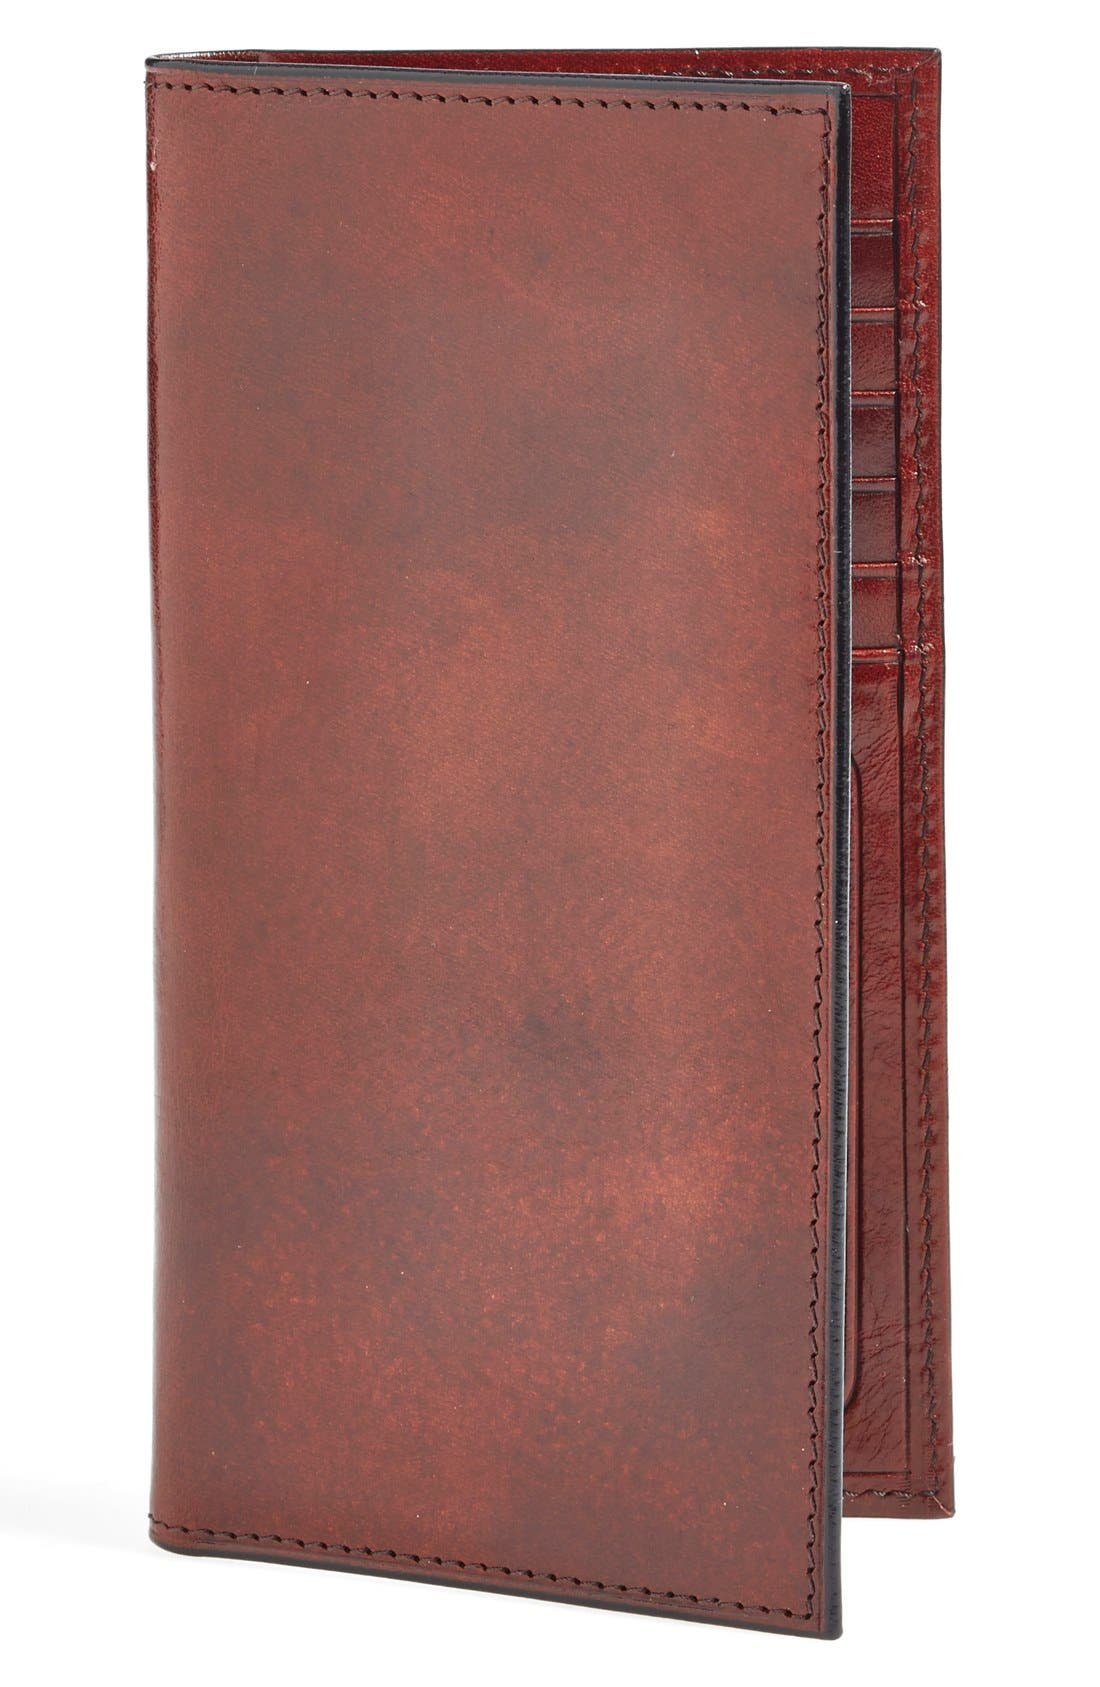 Main Image - Bosca 'Old Leather' Checkbook Wallet